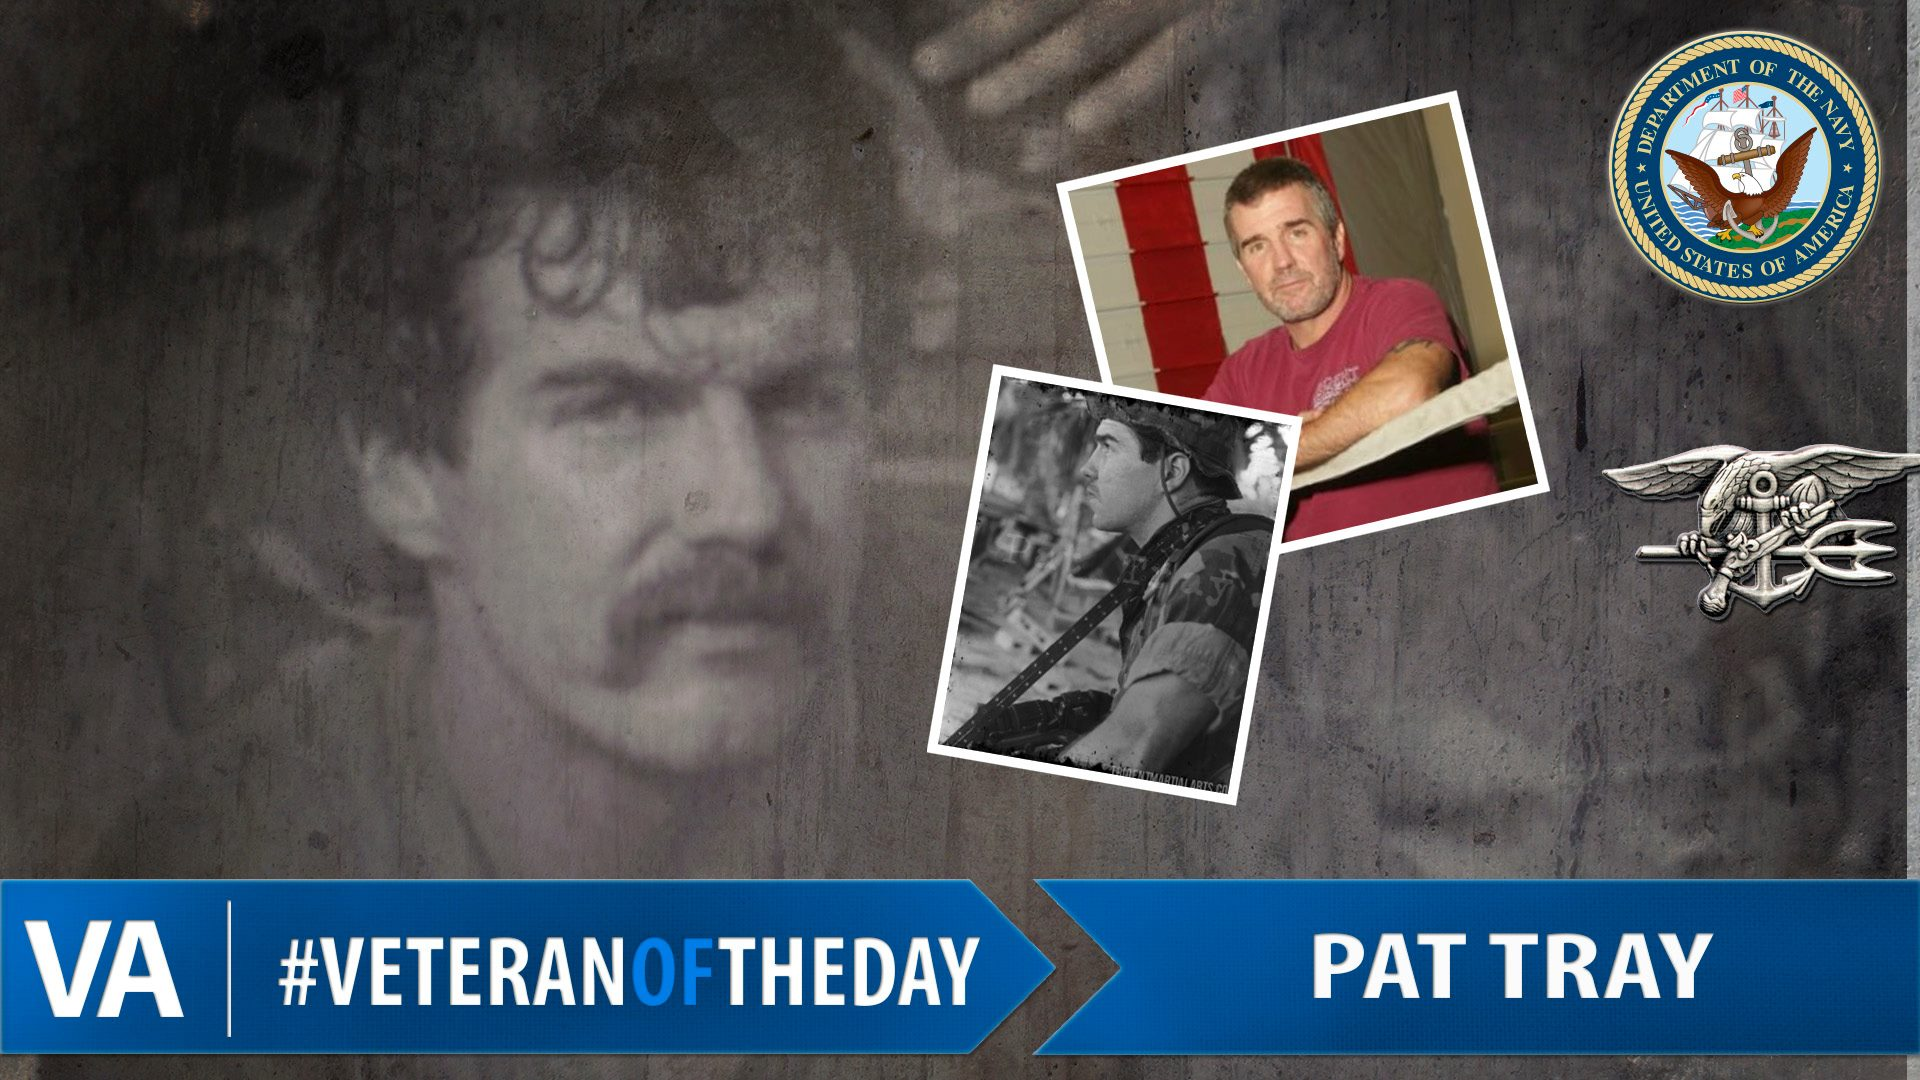 Veteran of the Day – Pat Tray